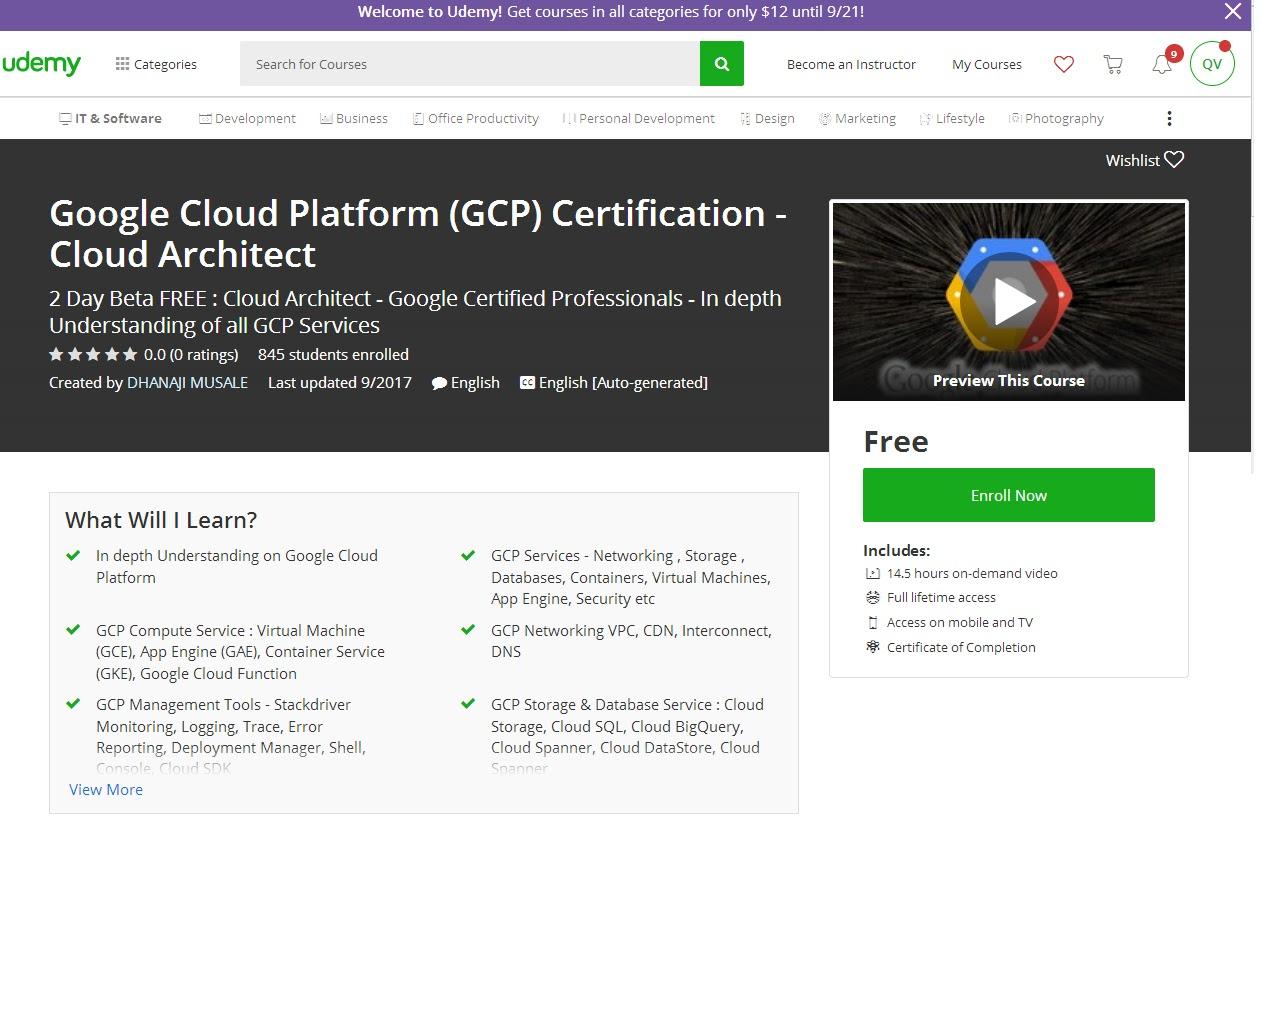 Google Cloud Platform Certification Cloud Architect GCP 5272264 ...